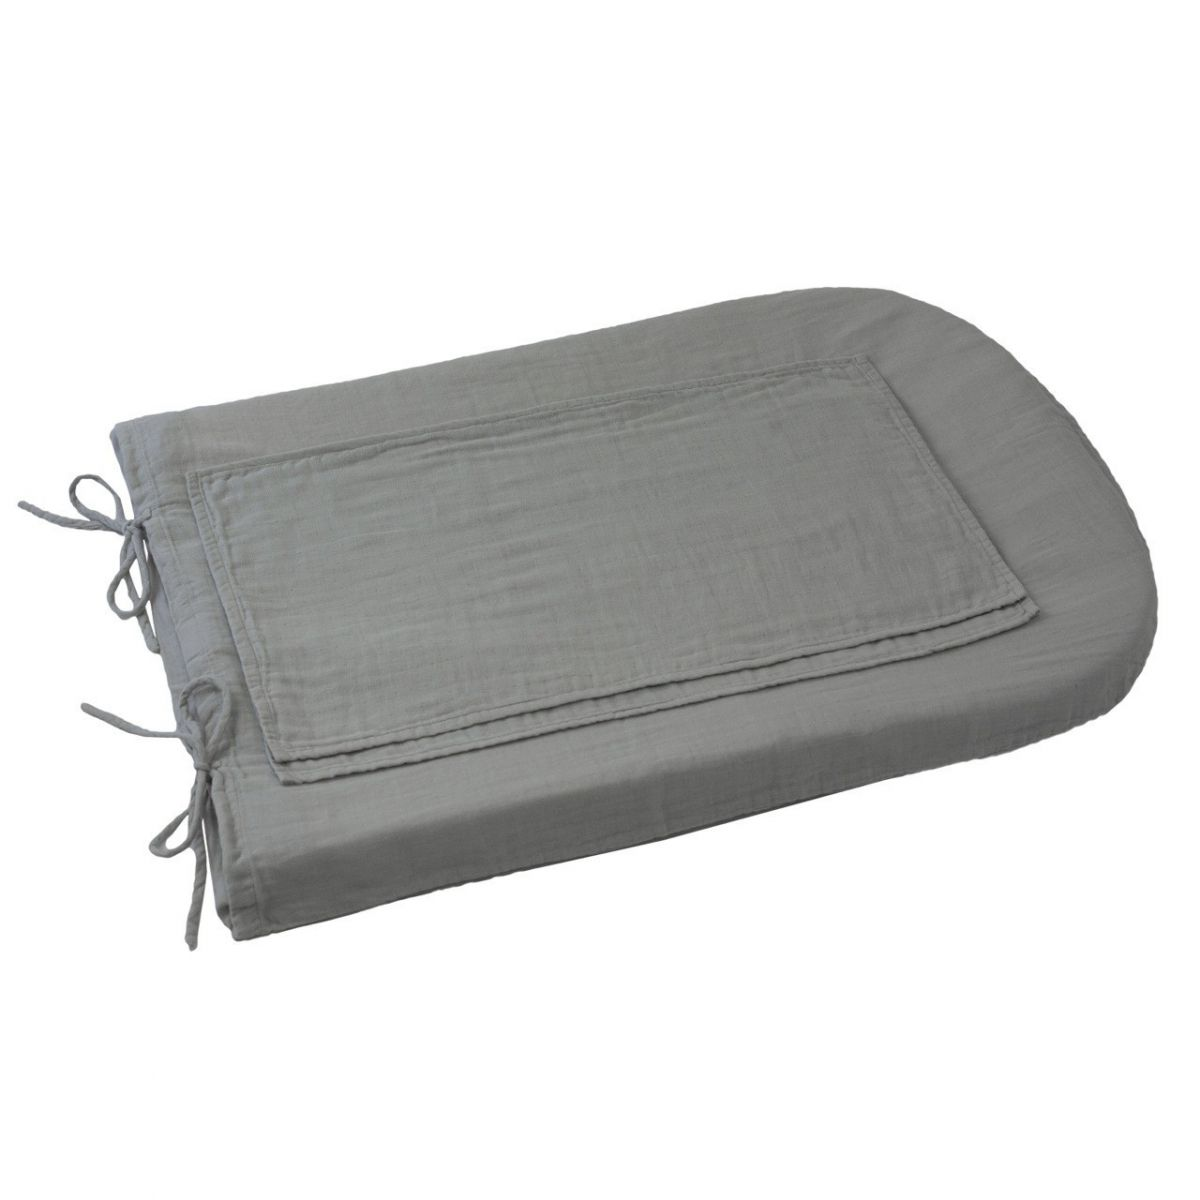 Numero 74 Changing Pad Cover Round silver grey